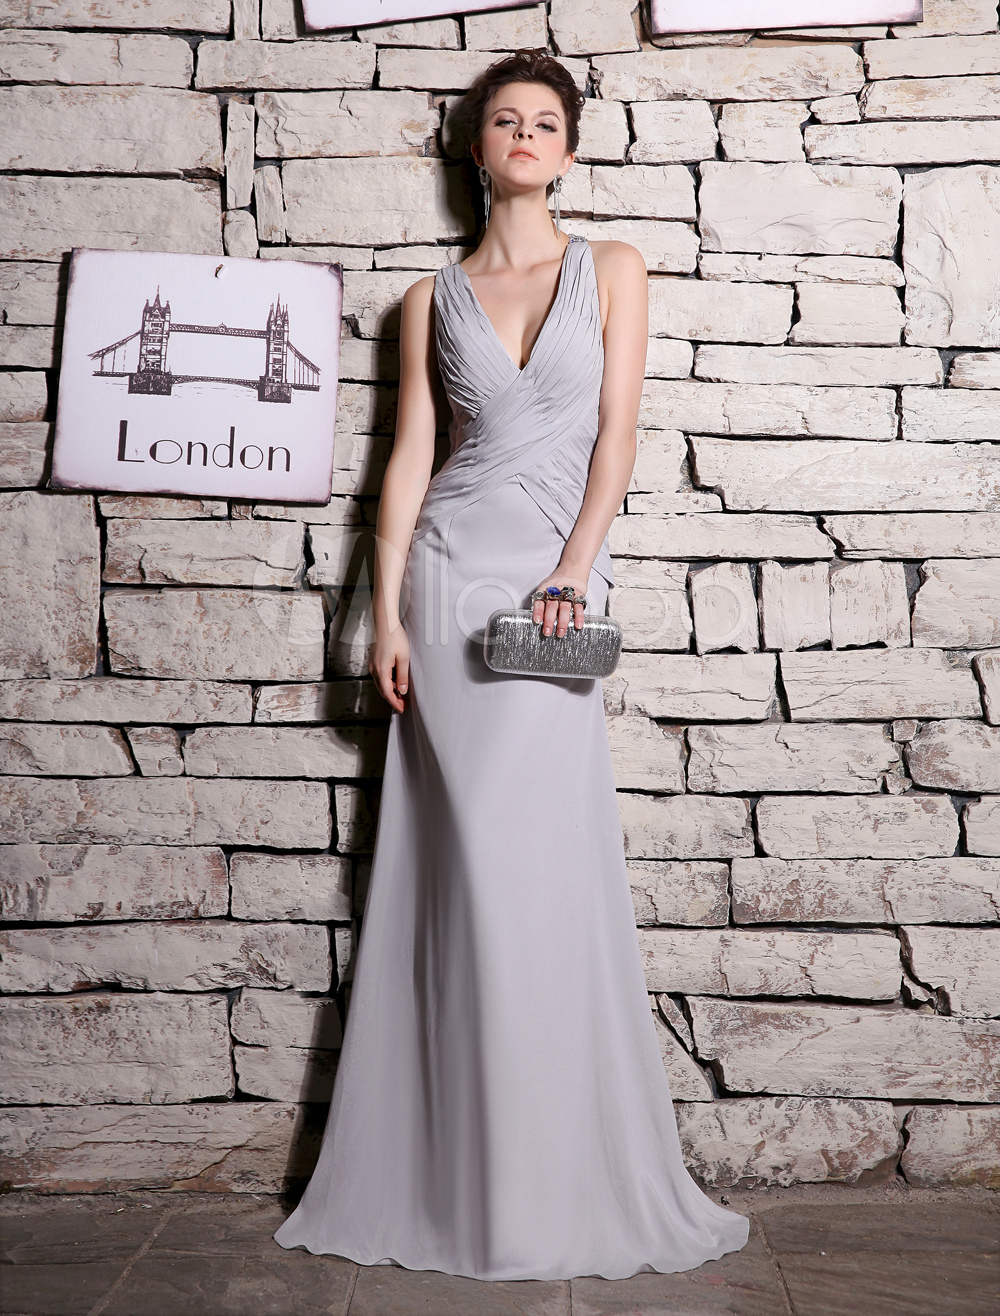 Chiffon Evening Dress  Gorgeous Silver V Neck Prom Dress Wrap Sheath Sleeveless Floor Length Party Dress Milanoo